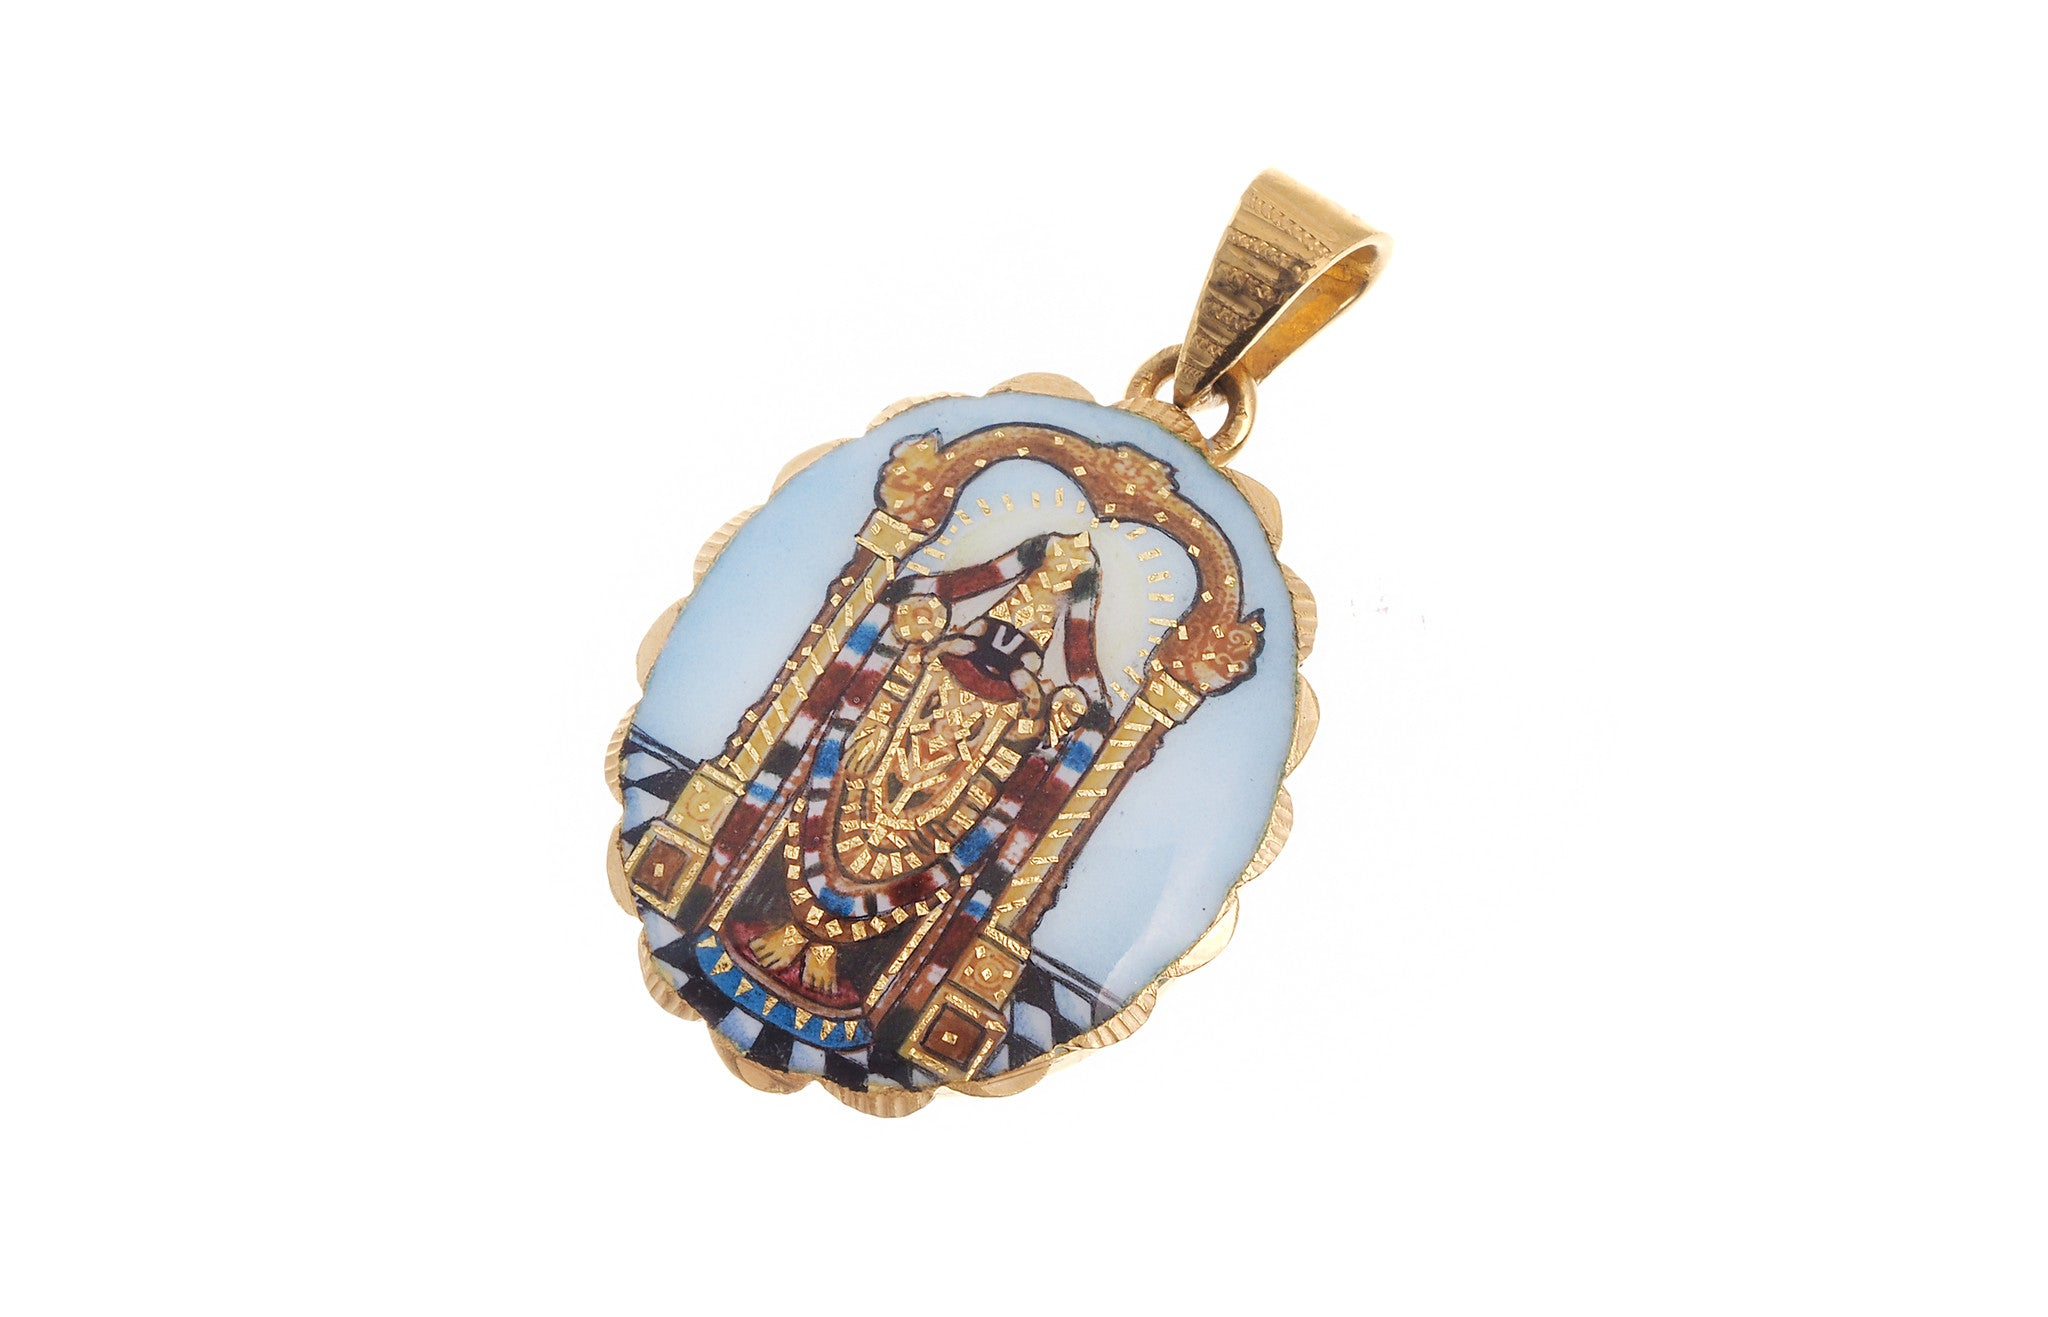 22ct Yellow Gold Balaji Pendant (G5323), Minar Jewellers - 1